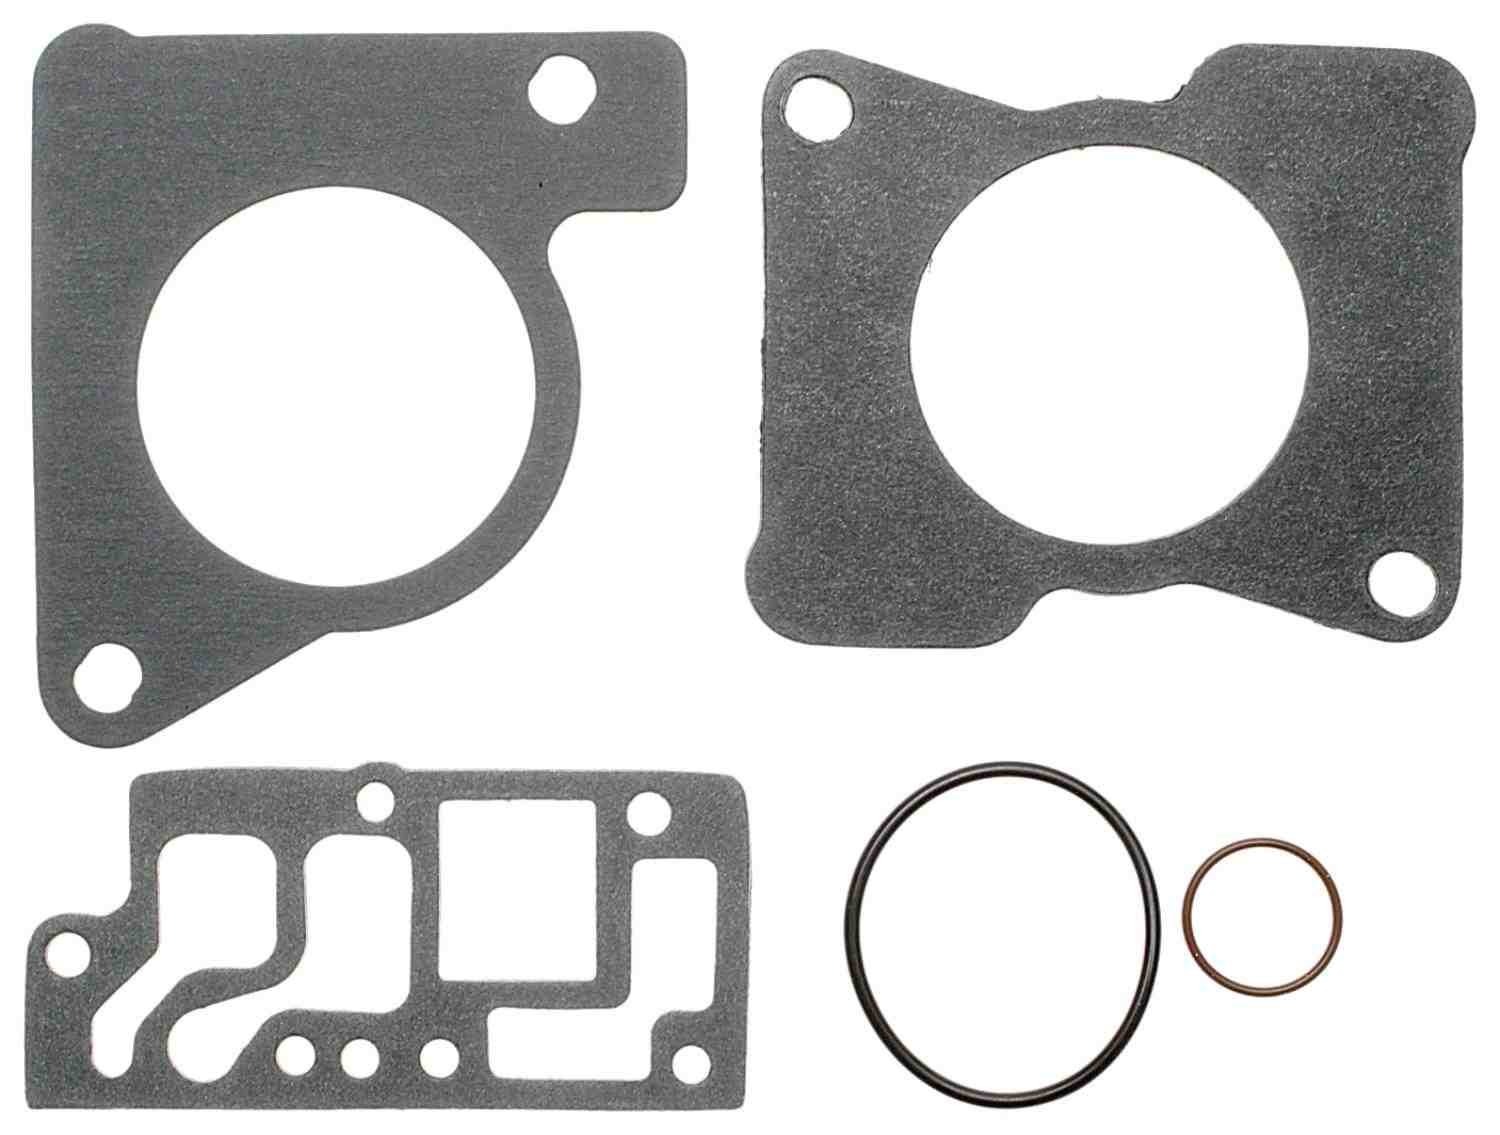 ACDELCO PROFESSIONAL - Fuel Injection Throttle Body Mounting Gasket Set - DCC 88865052